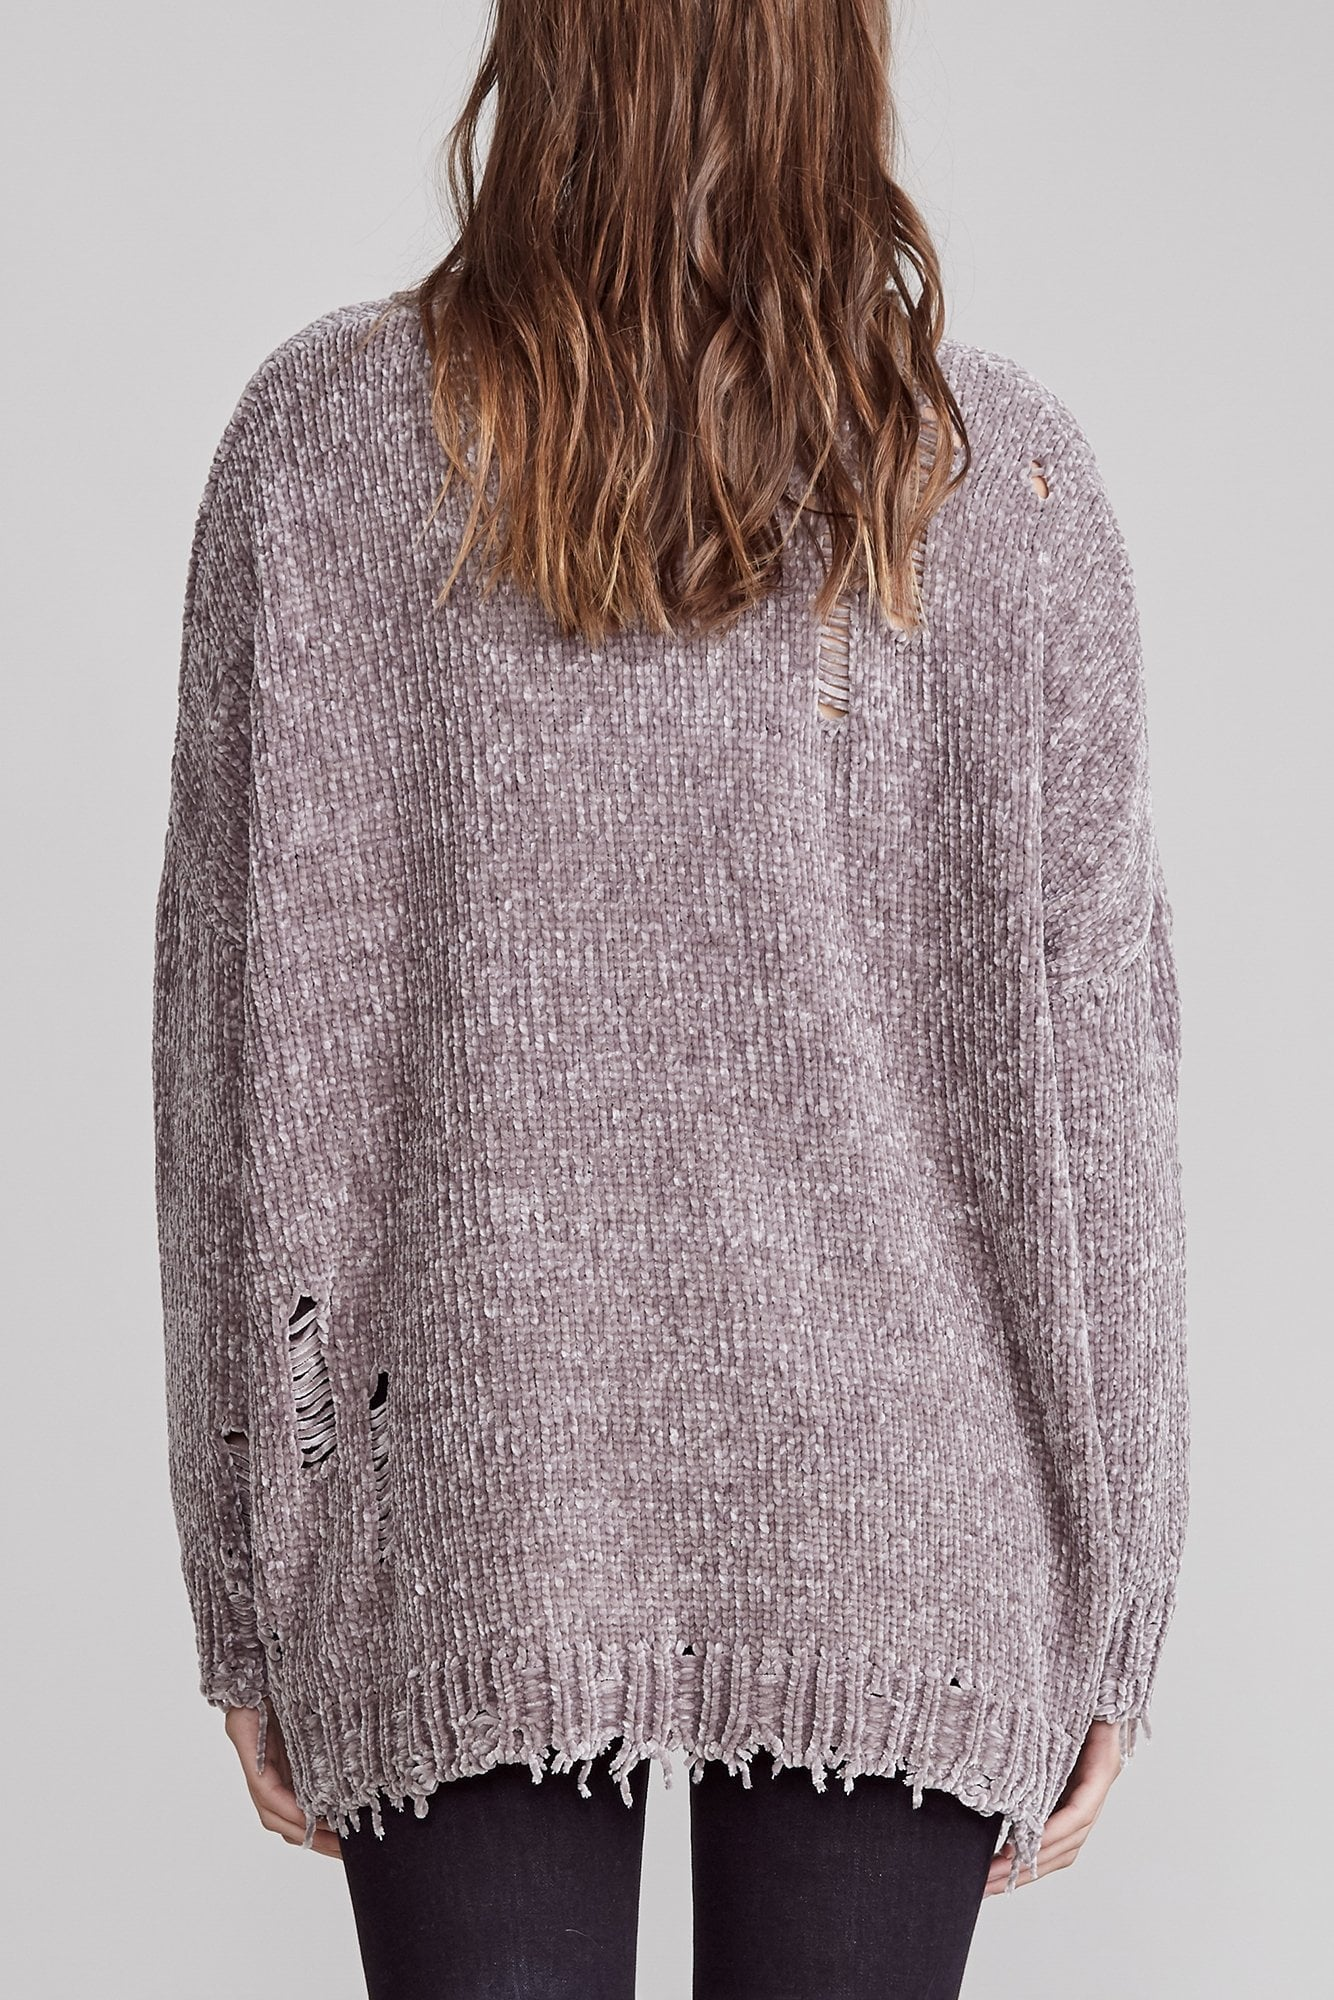 Distressed Chenille Crewneck - Grey